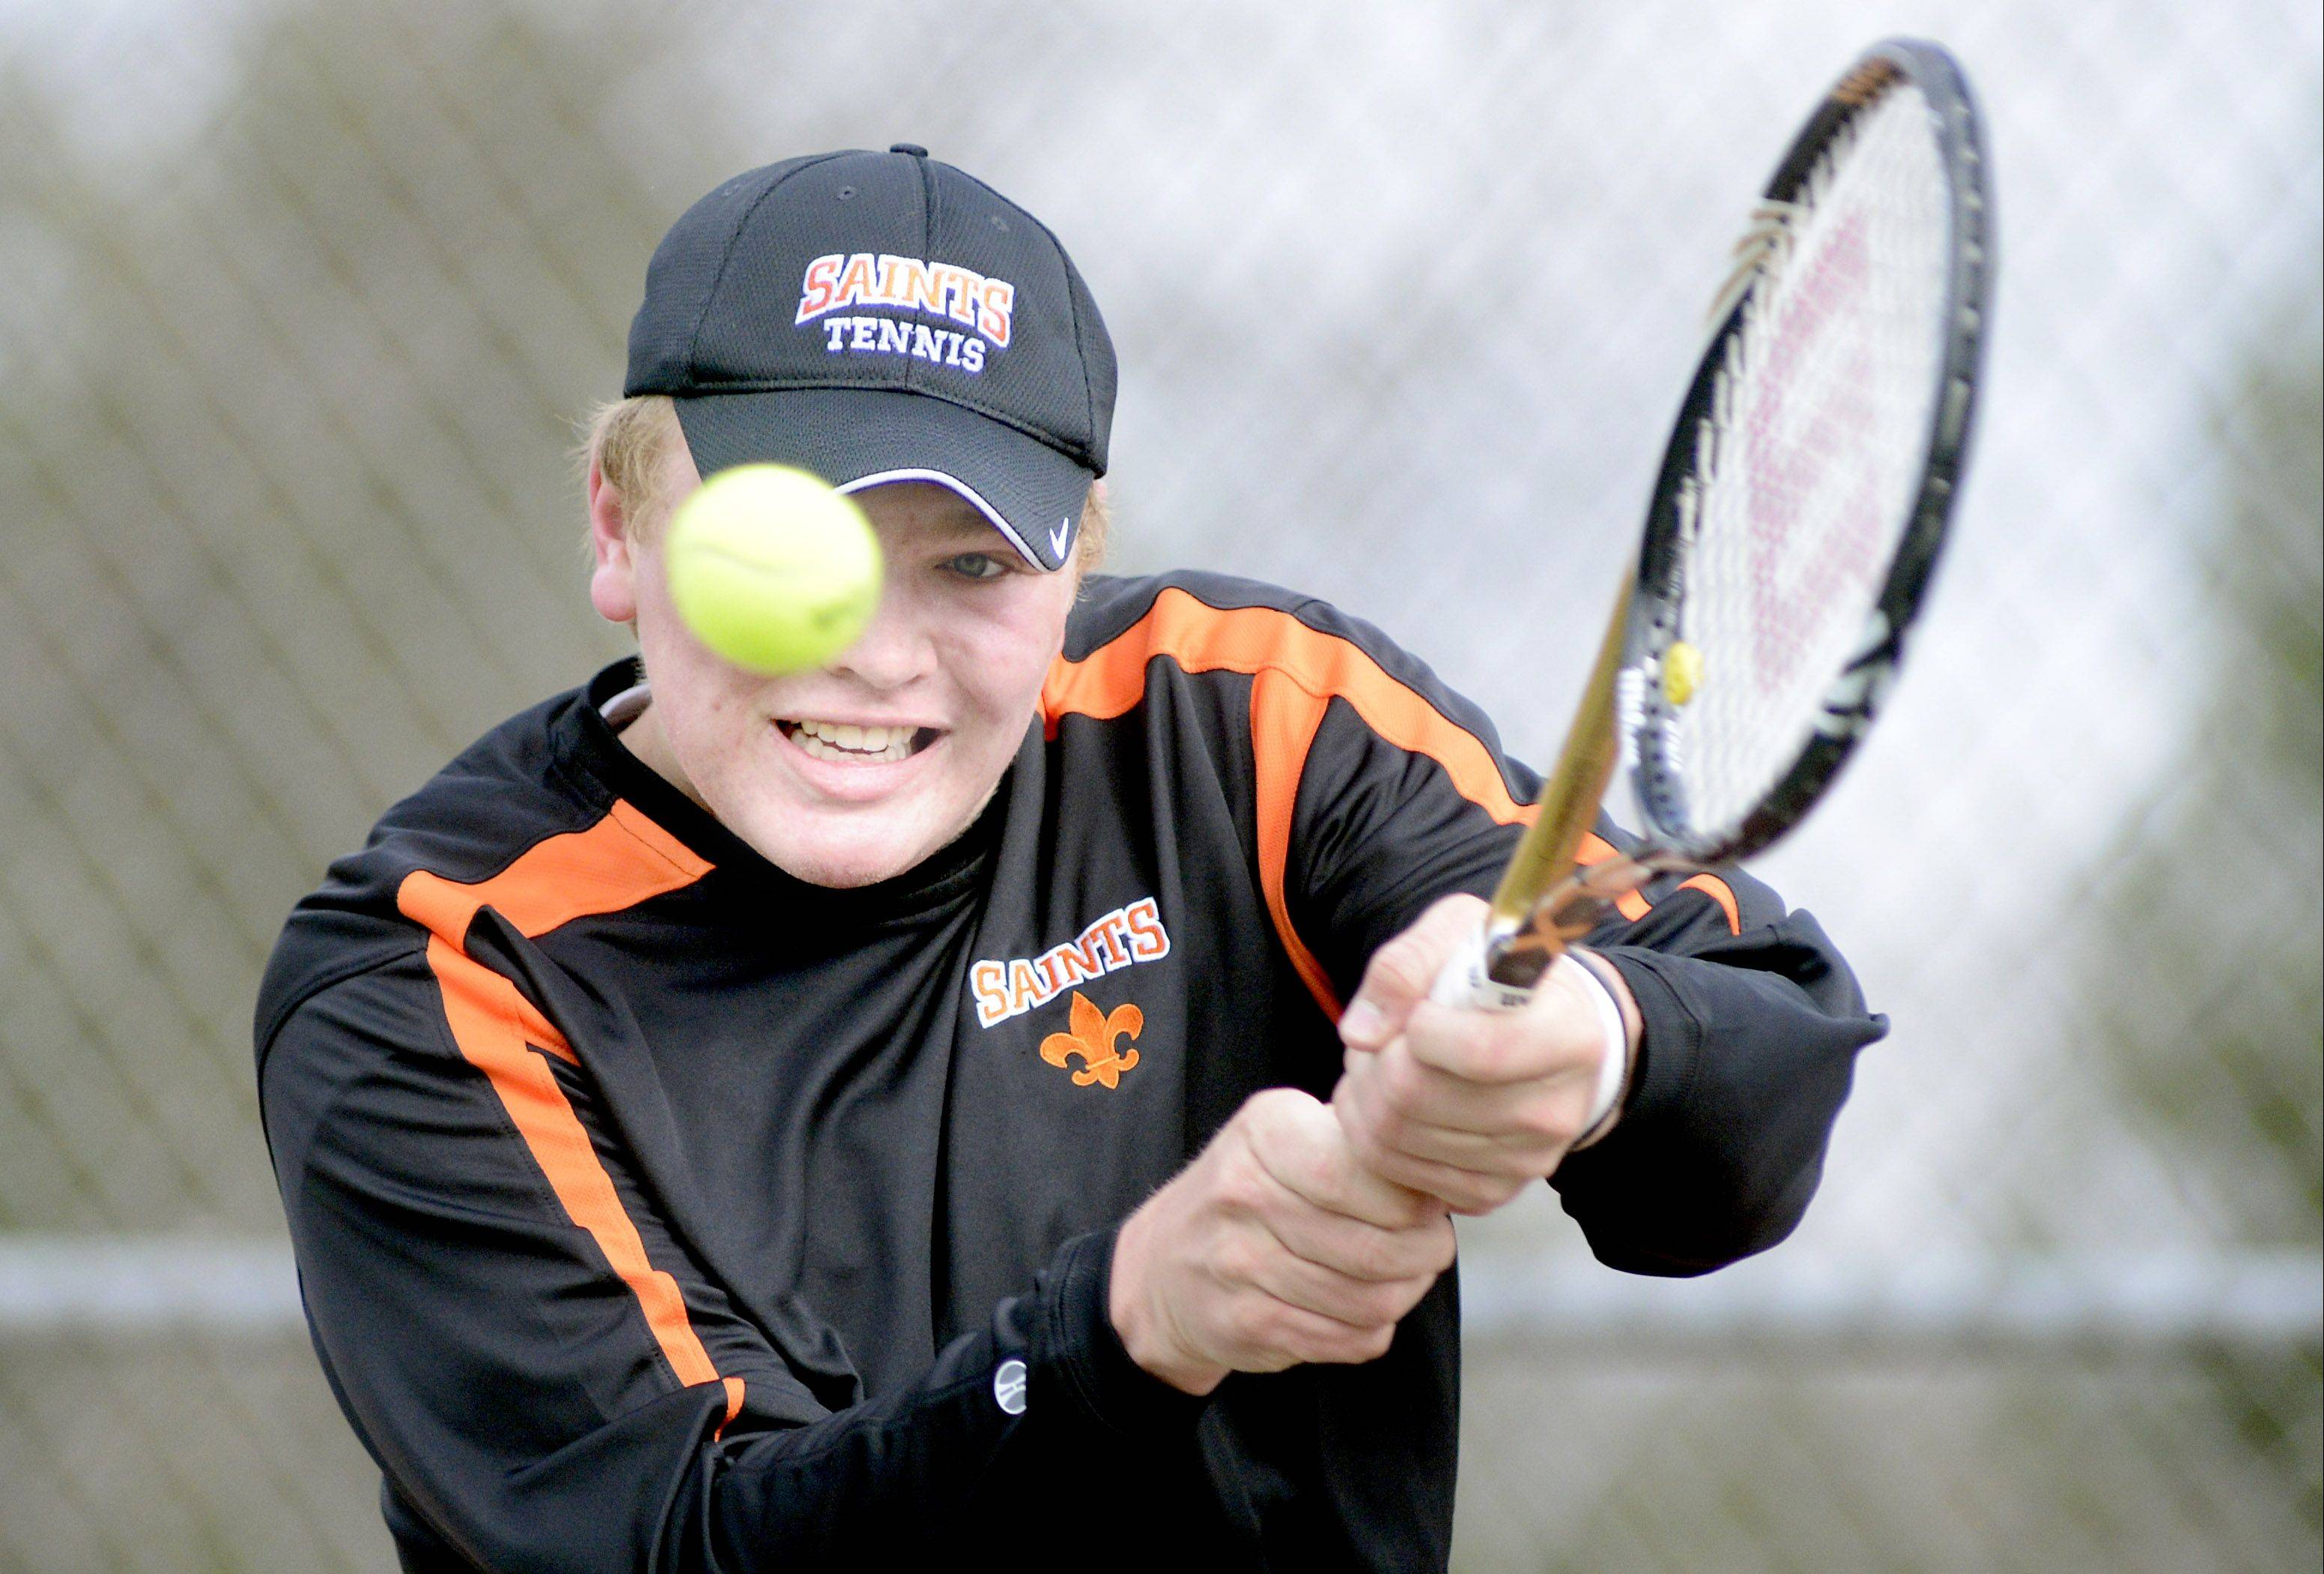 St. Charles East's Jasper Koenen returns a backhand Saturday at the Geneva Invitational. Koenen won the No. 1 singles draw with a 3-0 record.